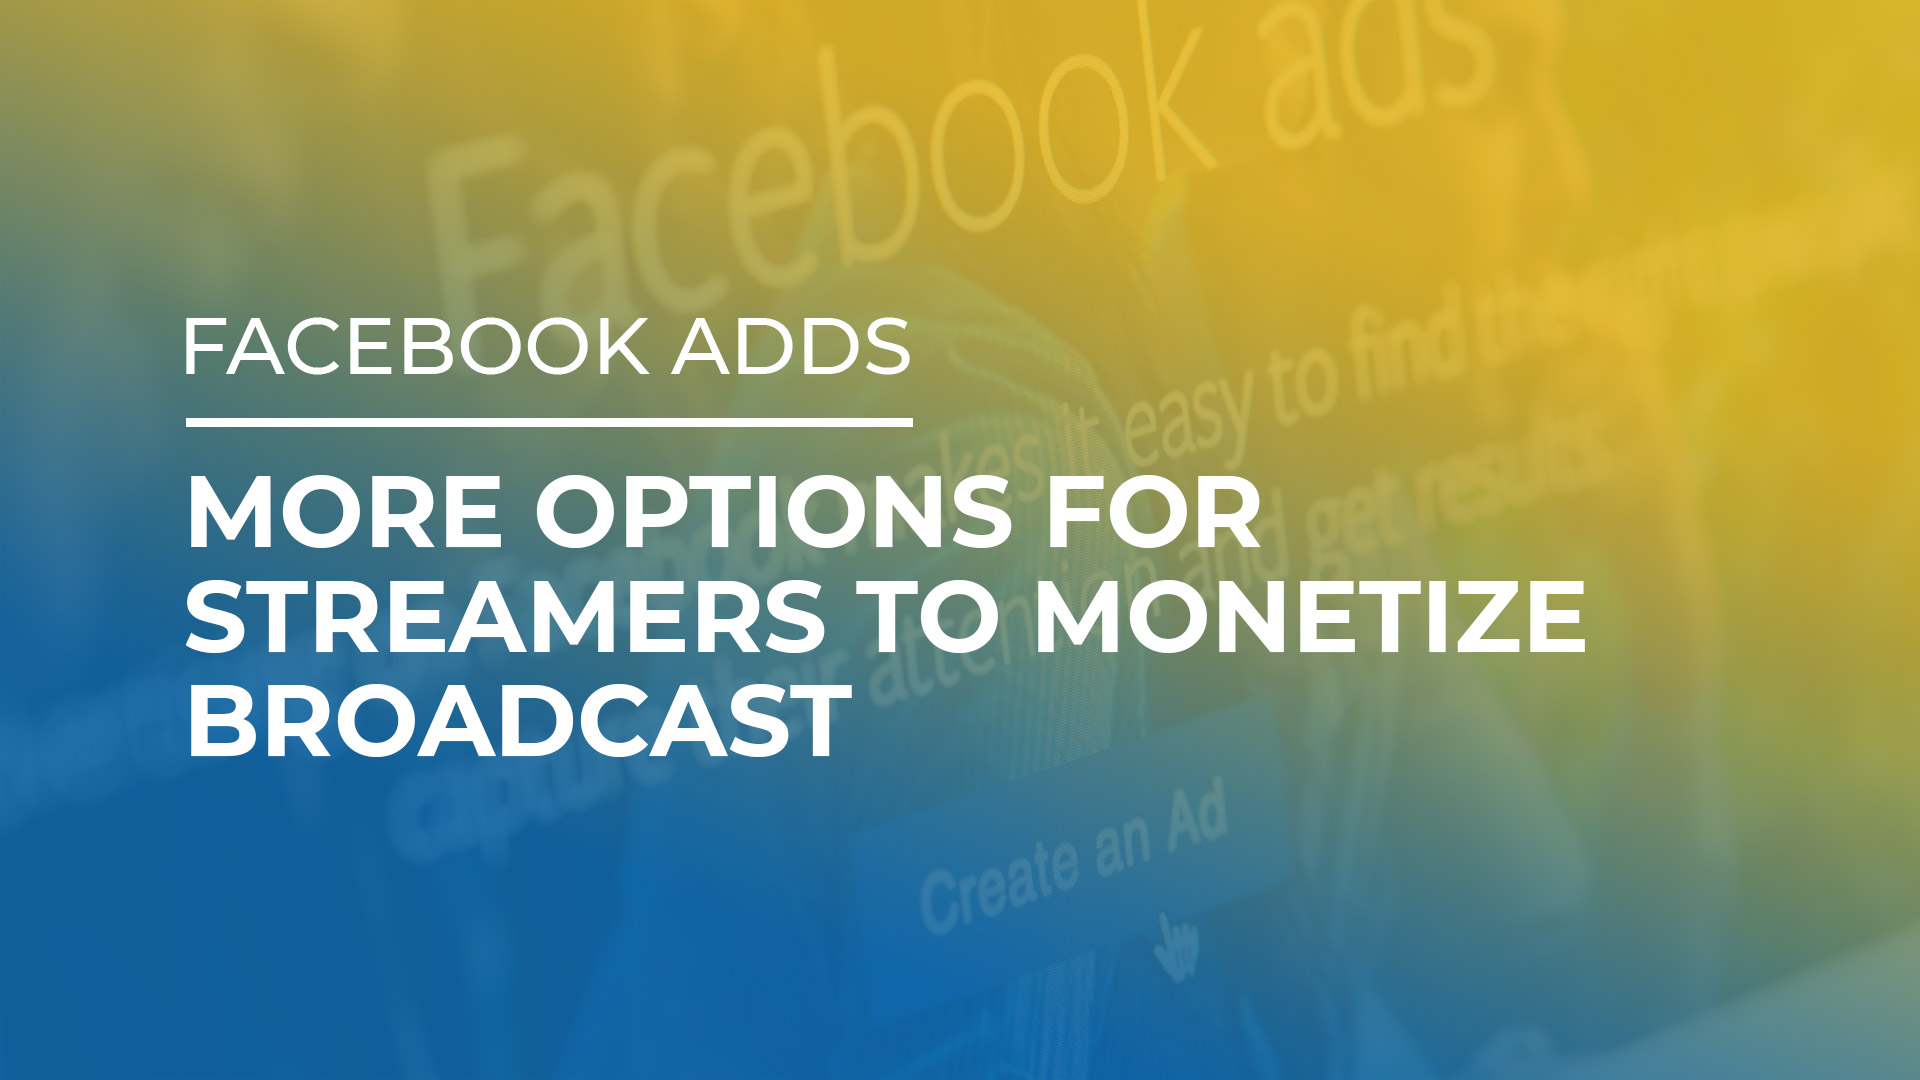 Facebook Adds More Options for Streamers to Monetize Broadcasts